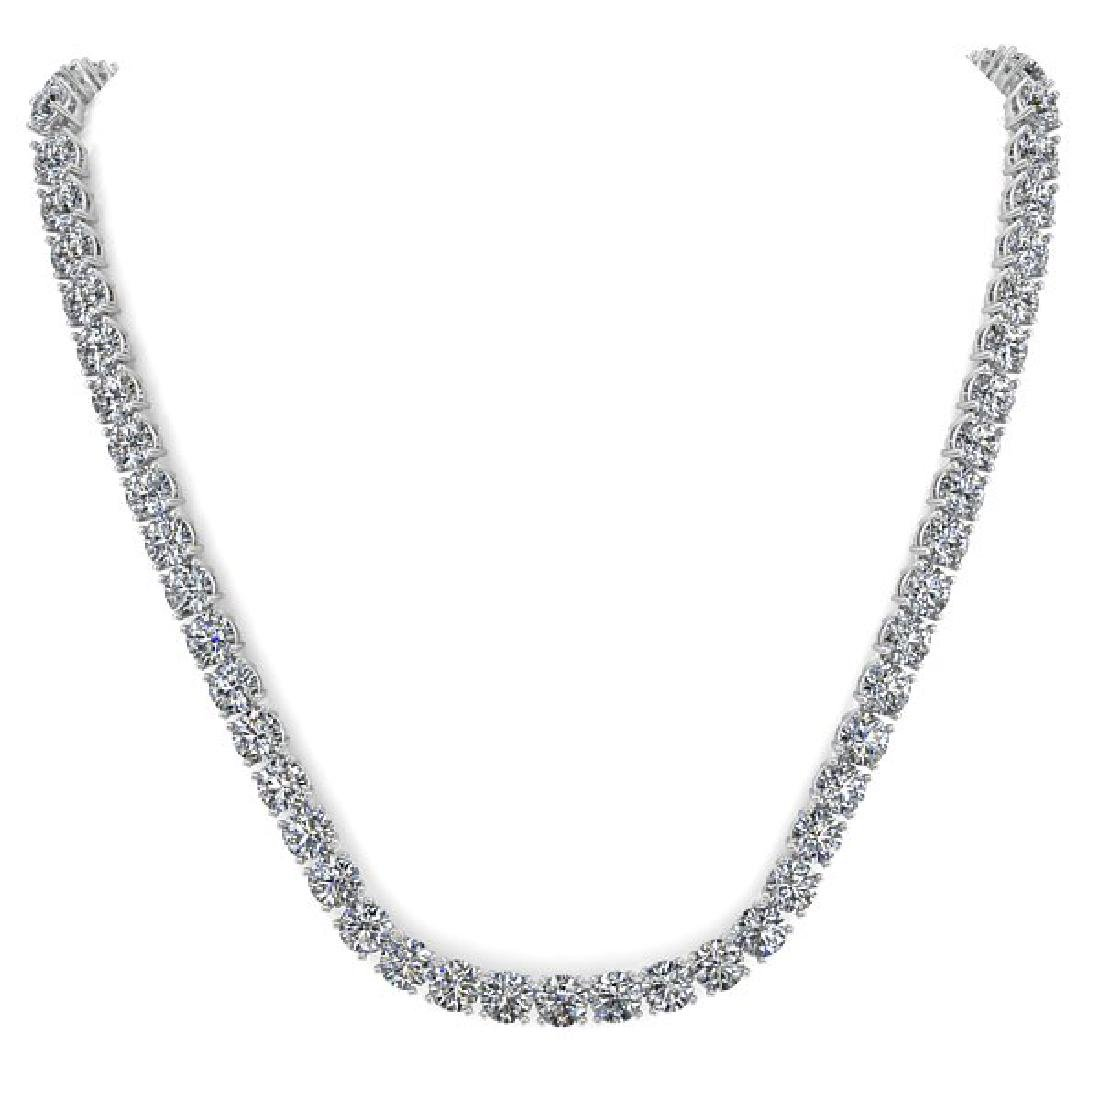 38 CTW Certified SI Diamond Necklace 14K White Gold - 3